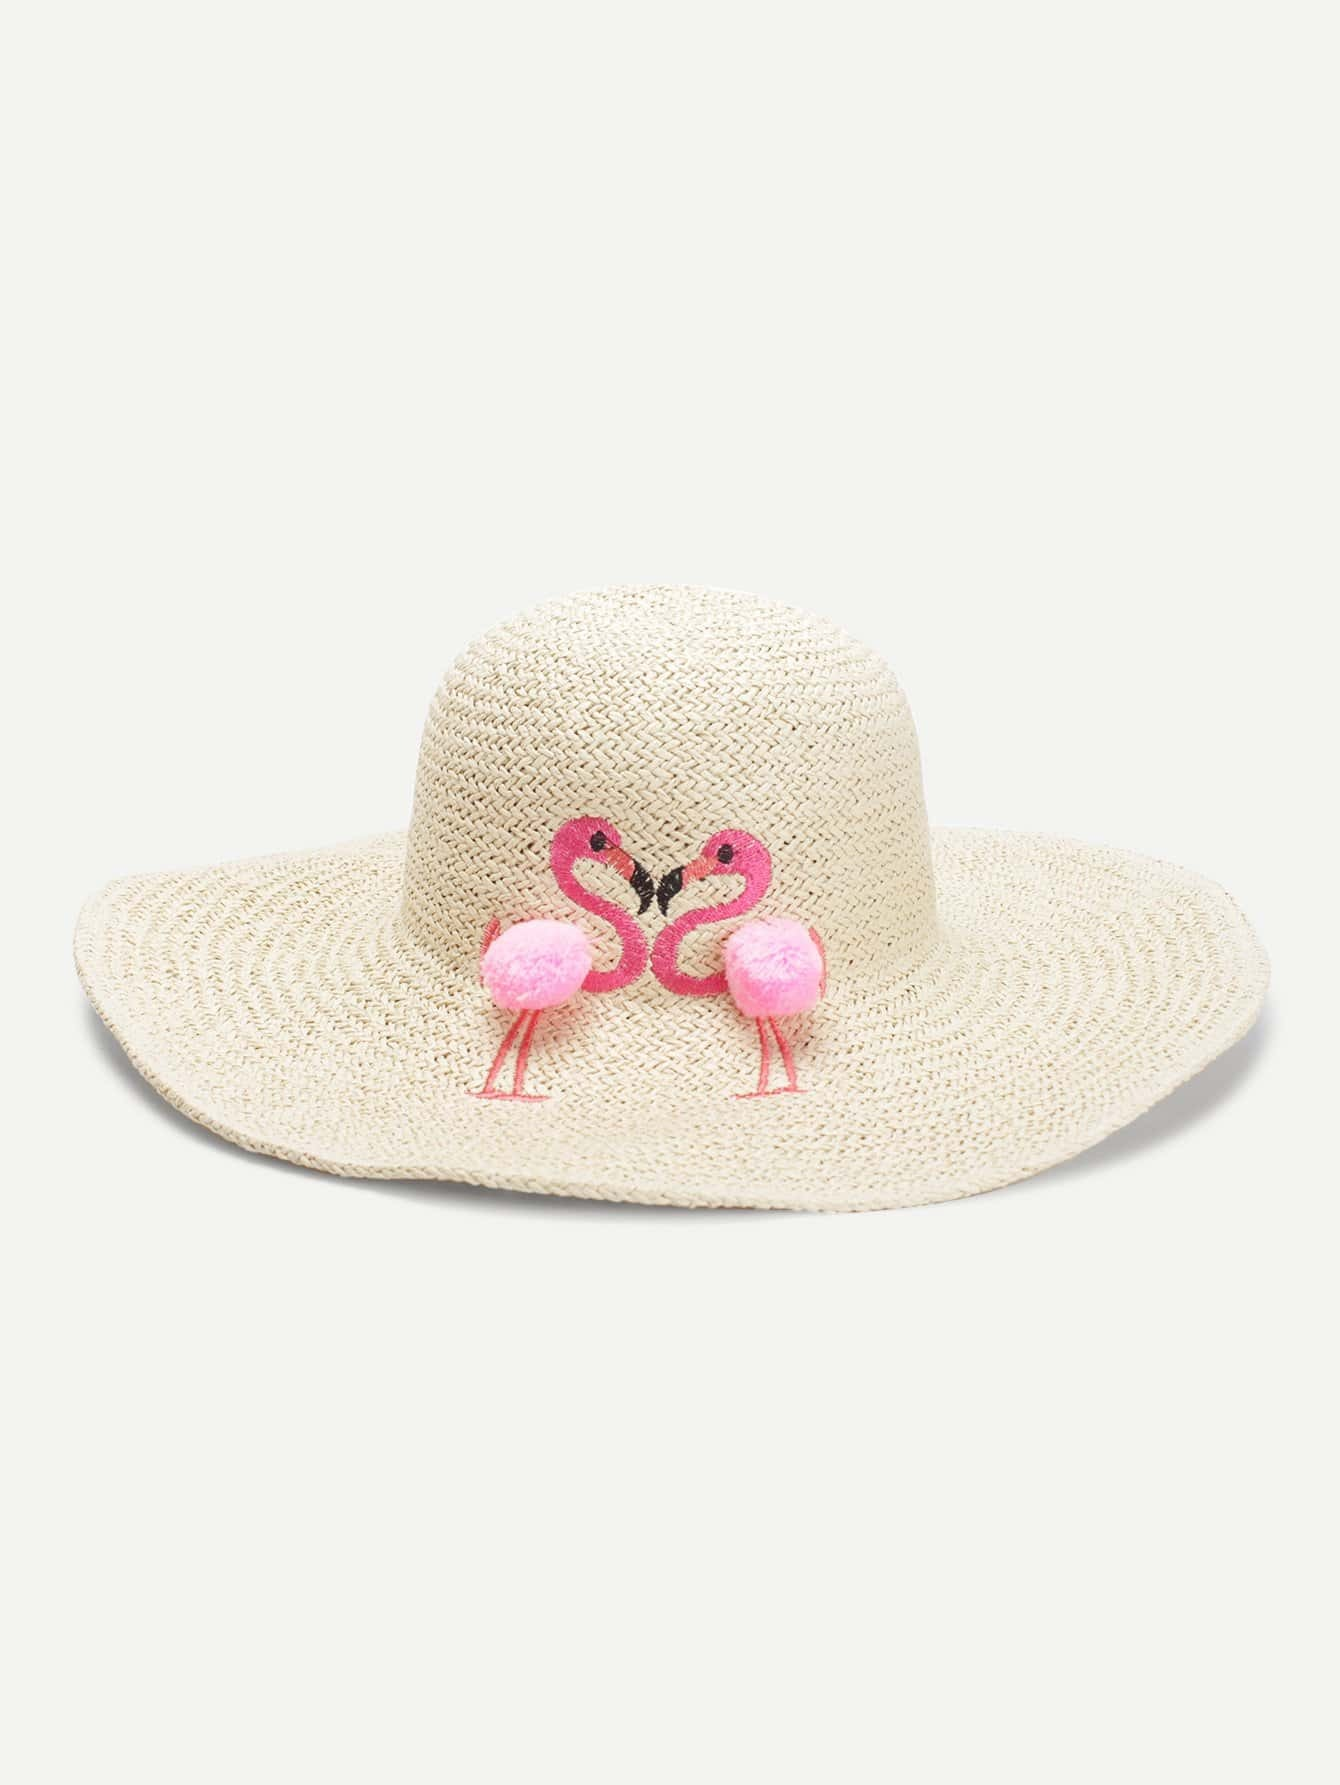 Women's Hats, Fashion Hats, Womens Straw Hats at Lulus 79